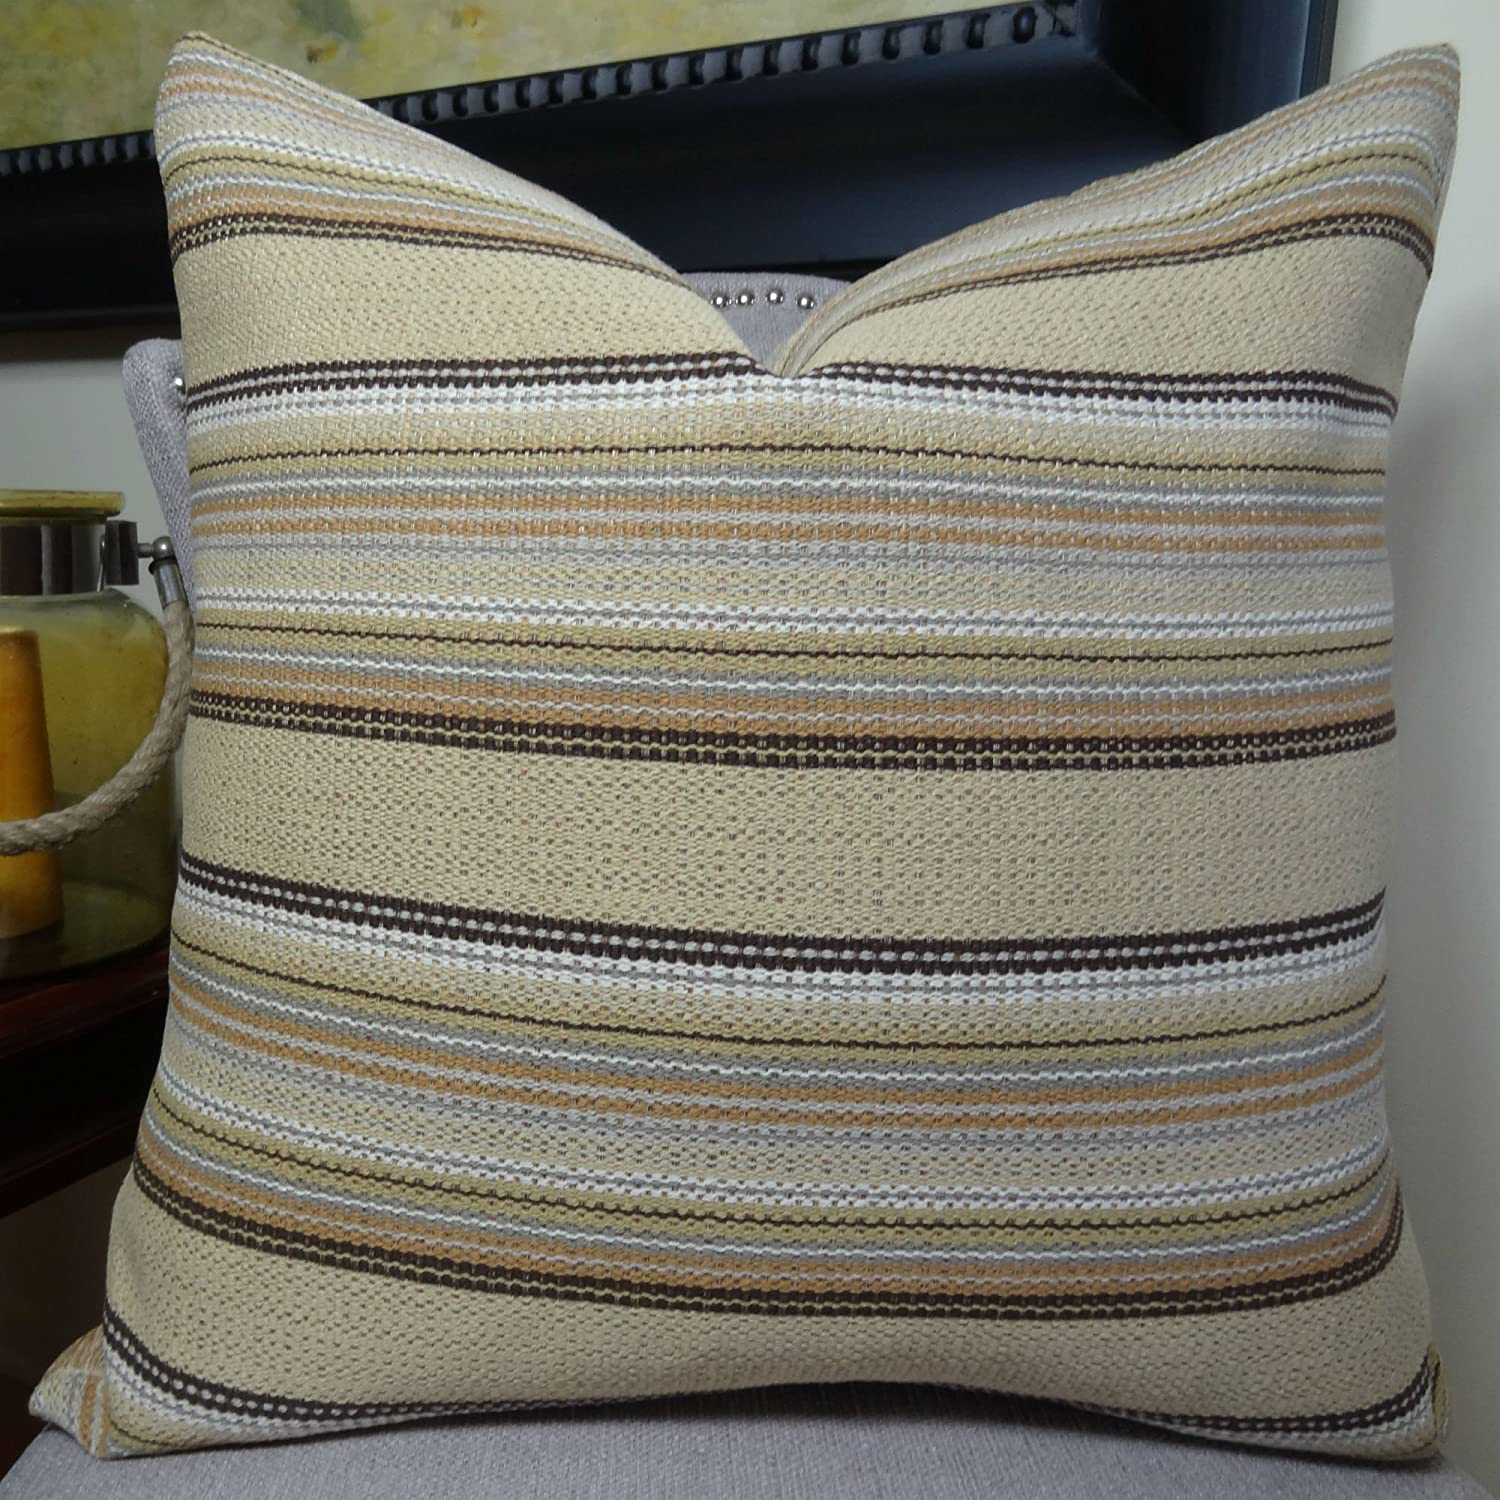 Thomas Collection Handmade in USA Luxury Accent Pillow for Couch Sofa Bed, Made in USA Pillow Insert & Cover, Taupe Brown Stripe Pillow  11224